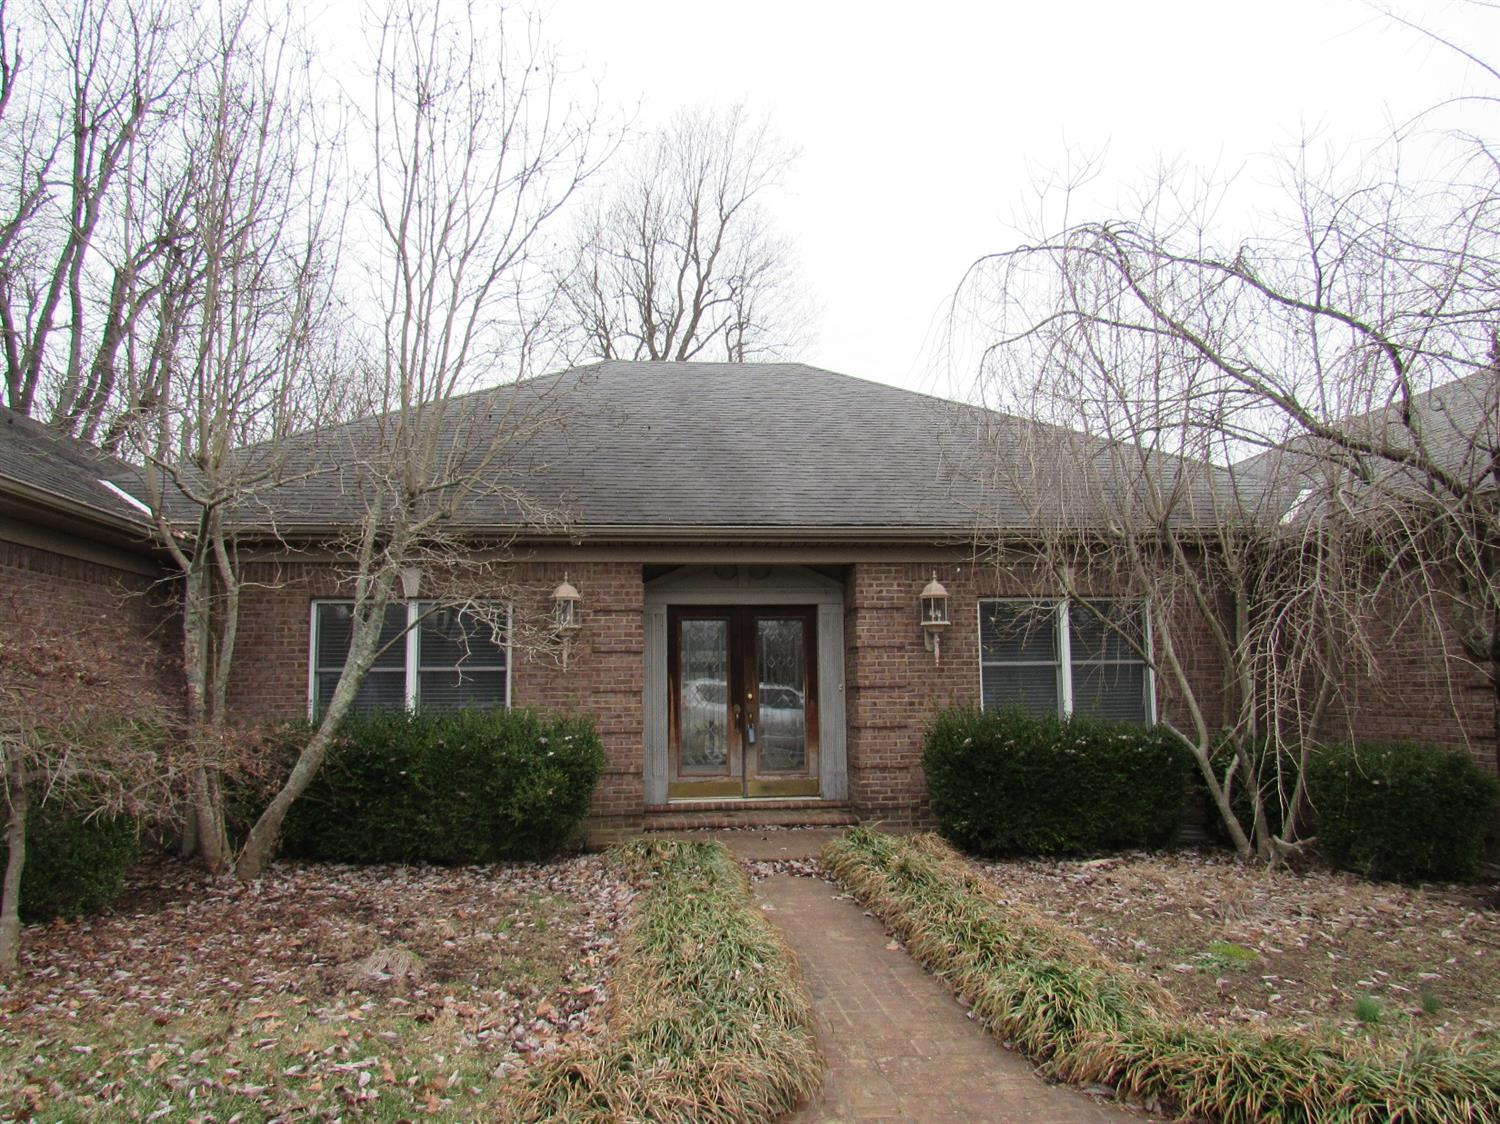 Home For Sale at 1220 Brannon Rd, Nicholasville, KY 40356